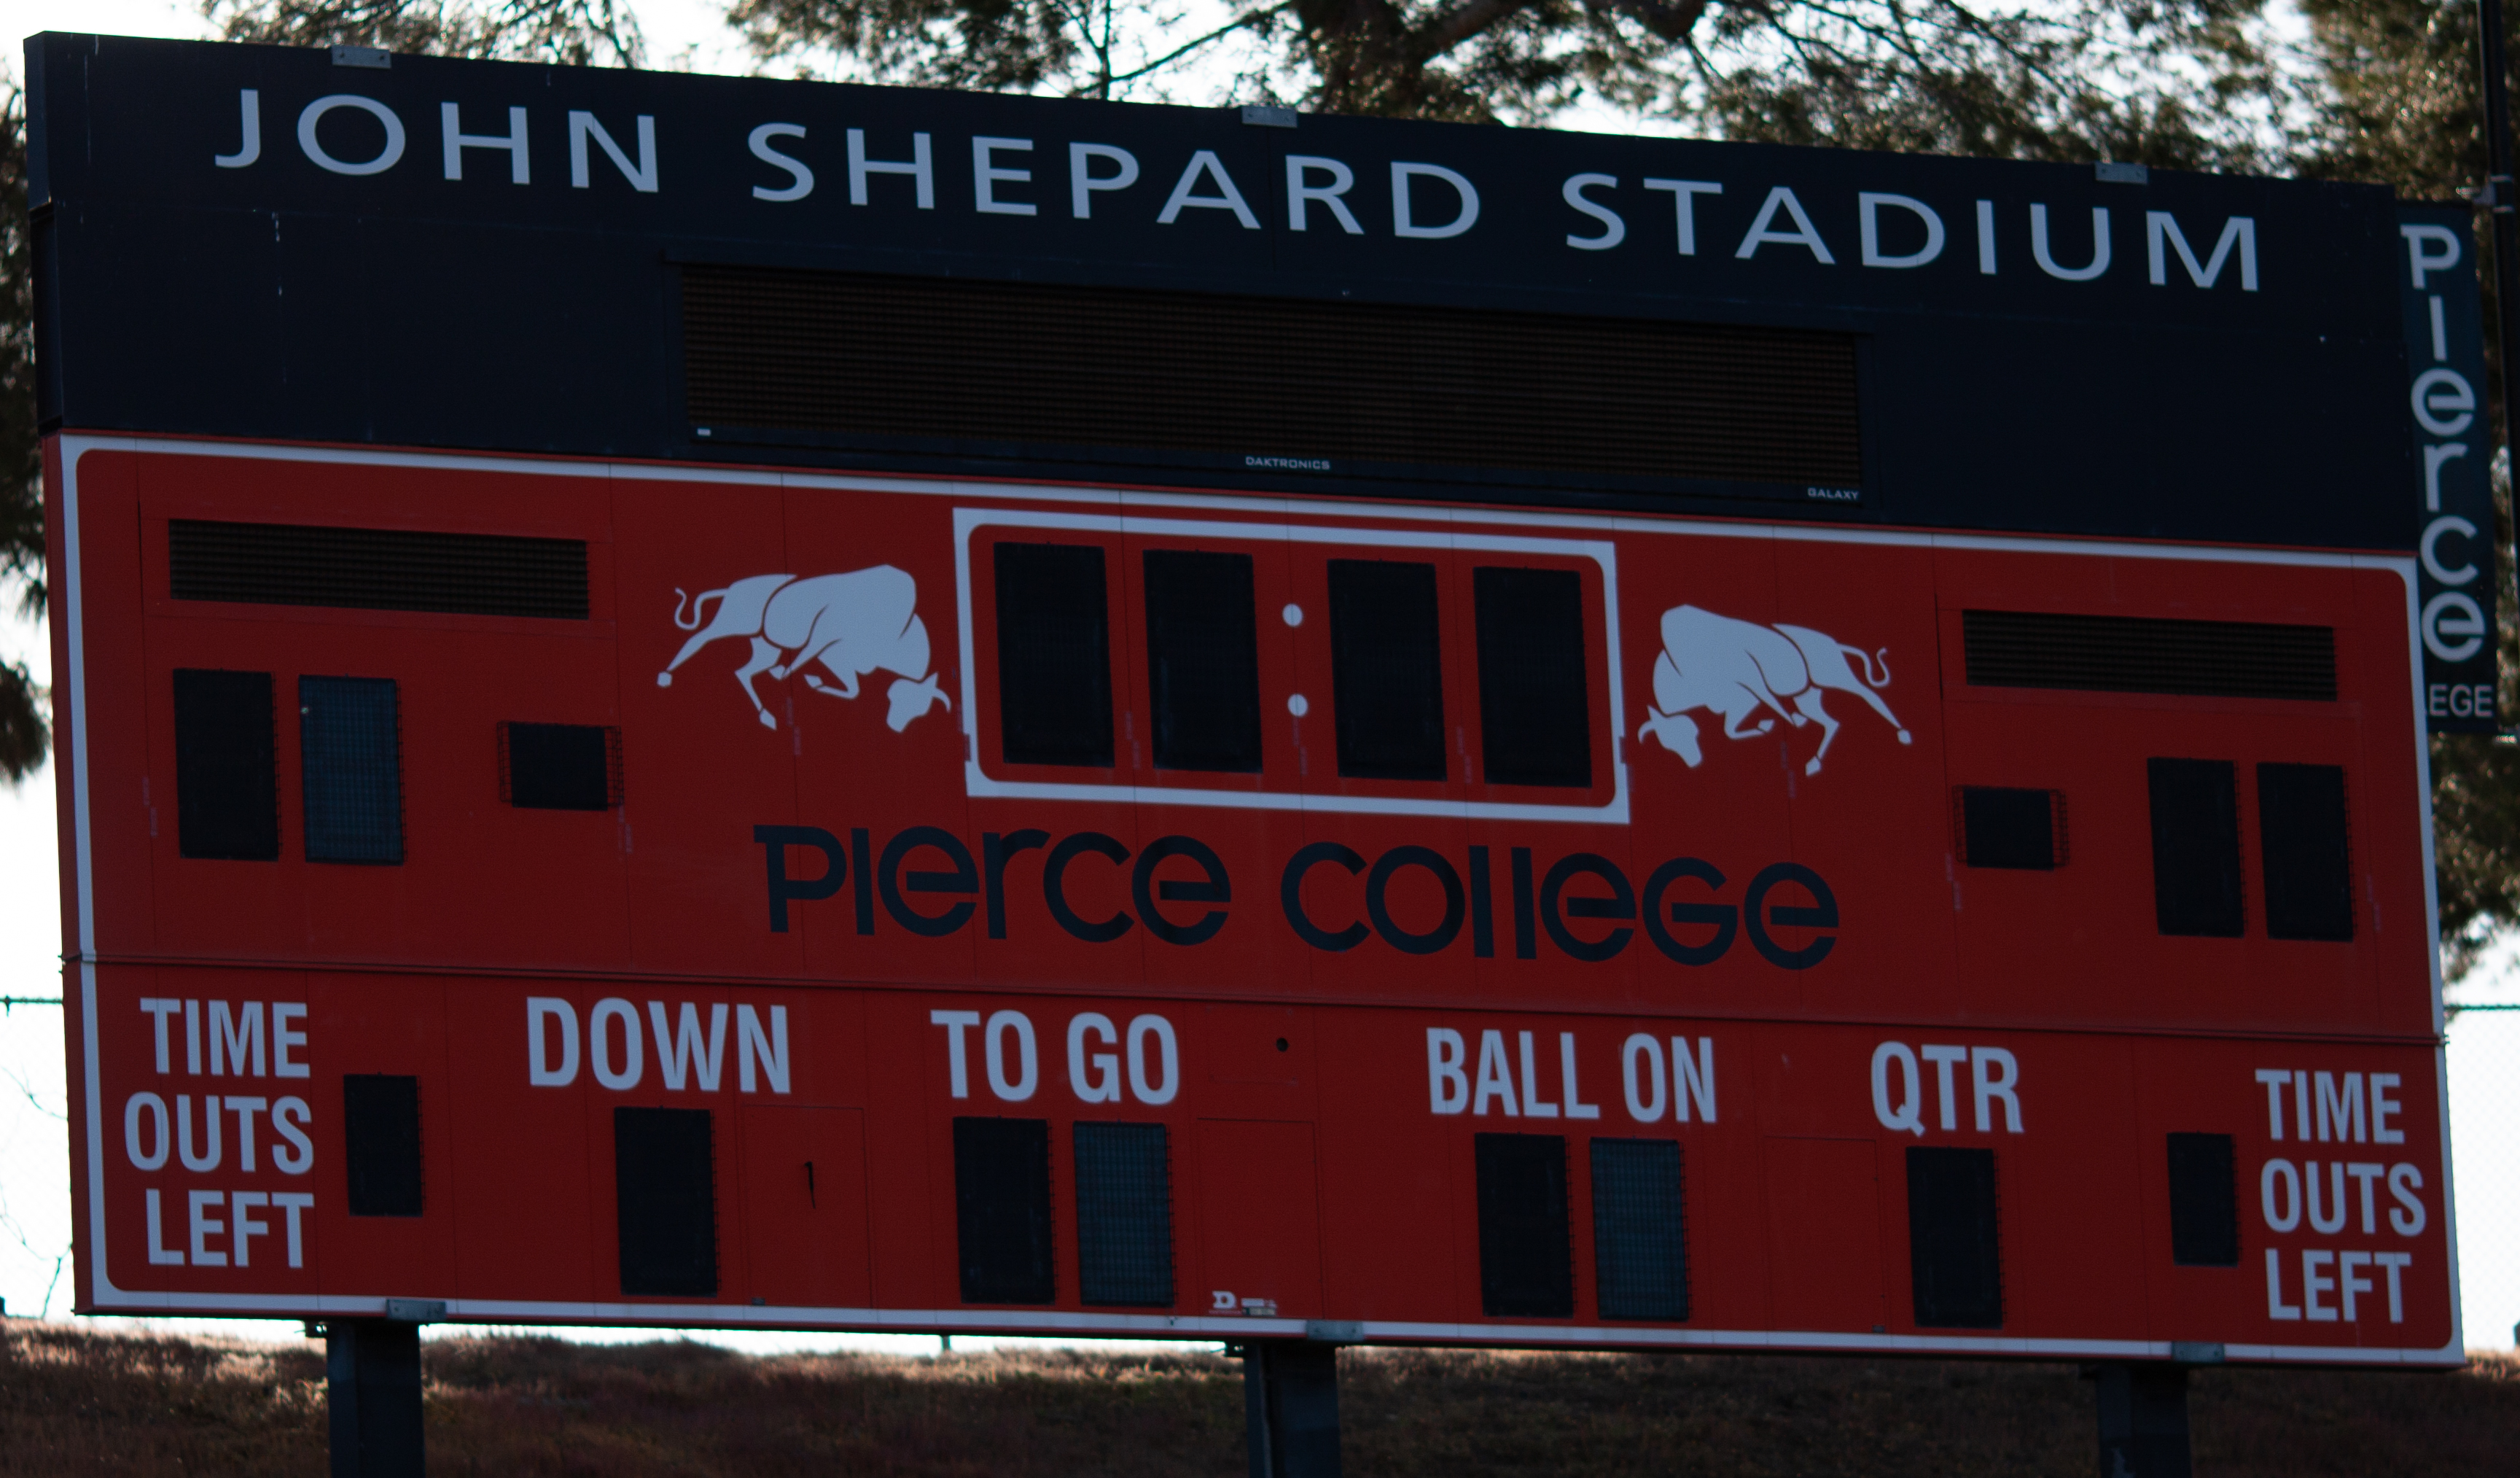 New scoreboard helps attract athletes